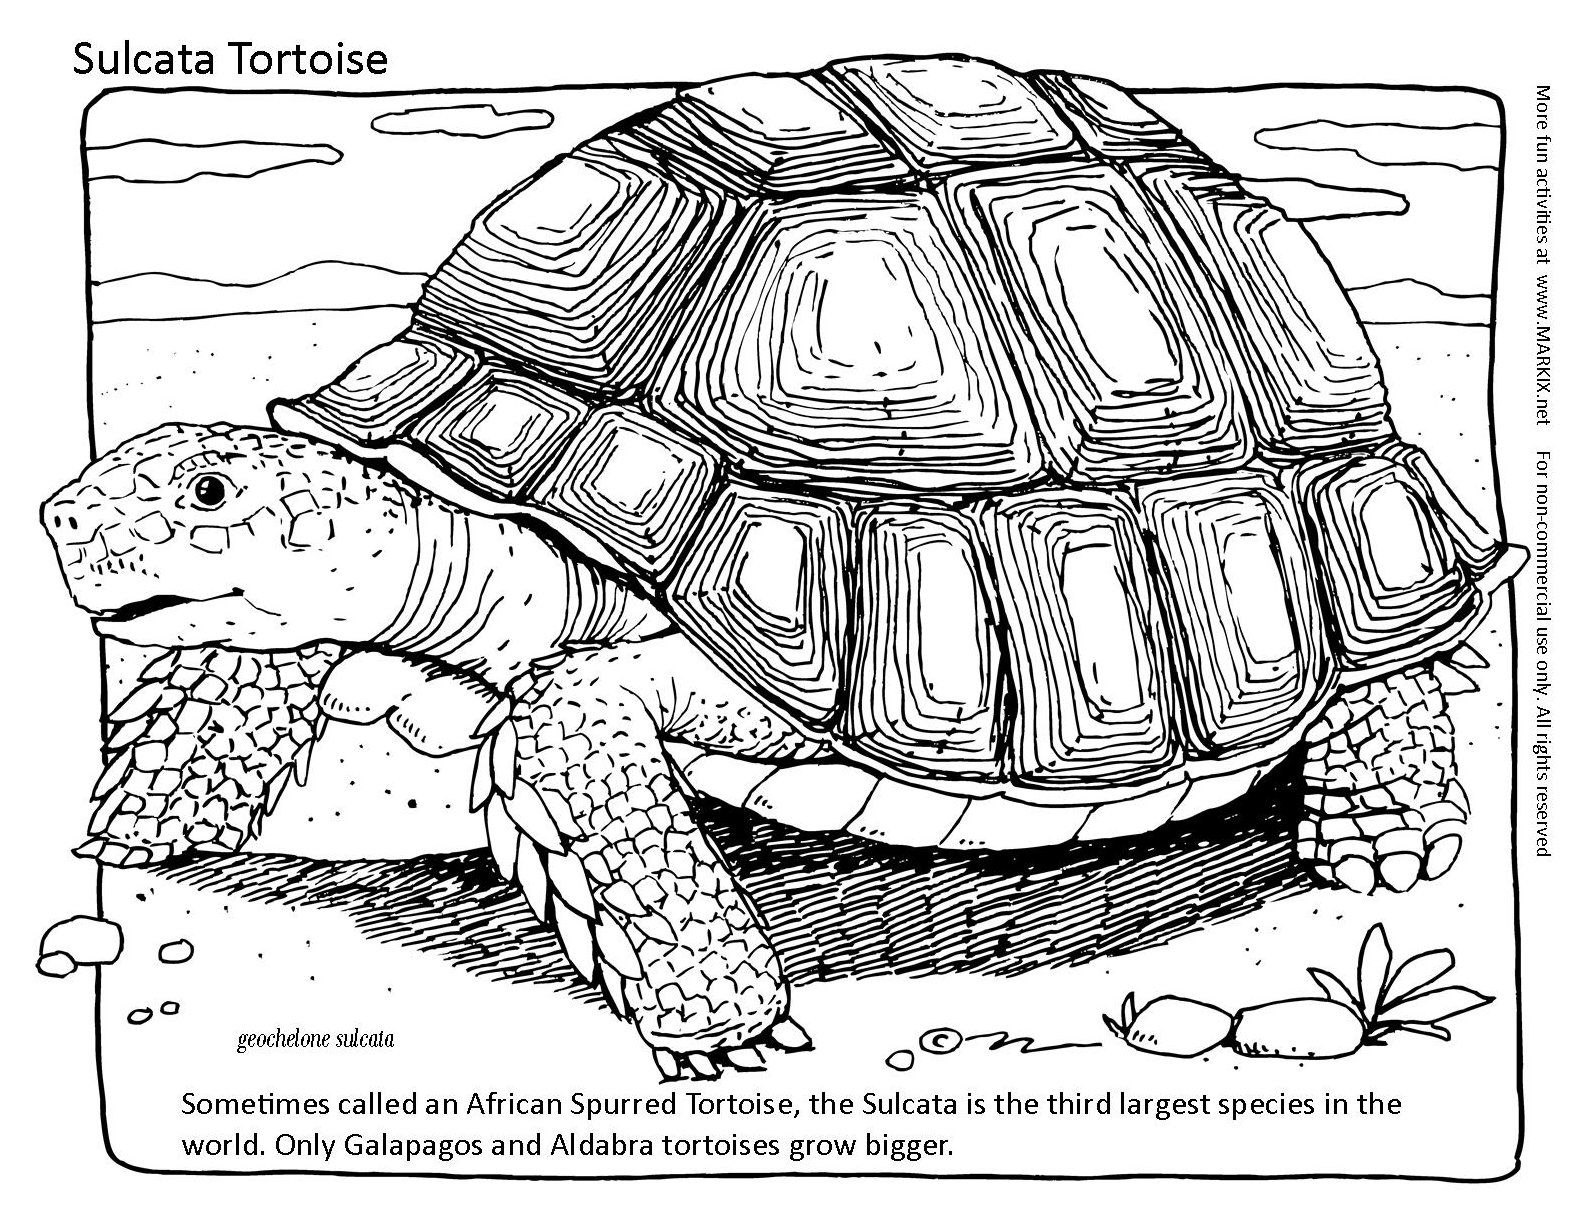 Tortoise Coloring Page. Sometimes called an African Spurred Tortoise ...